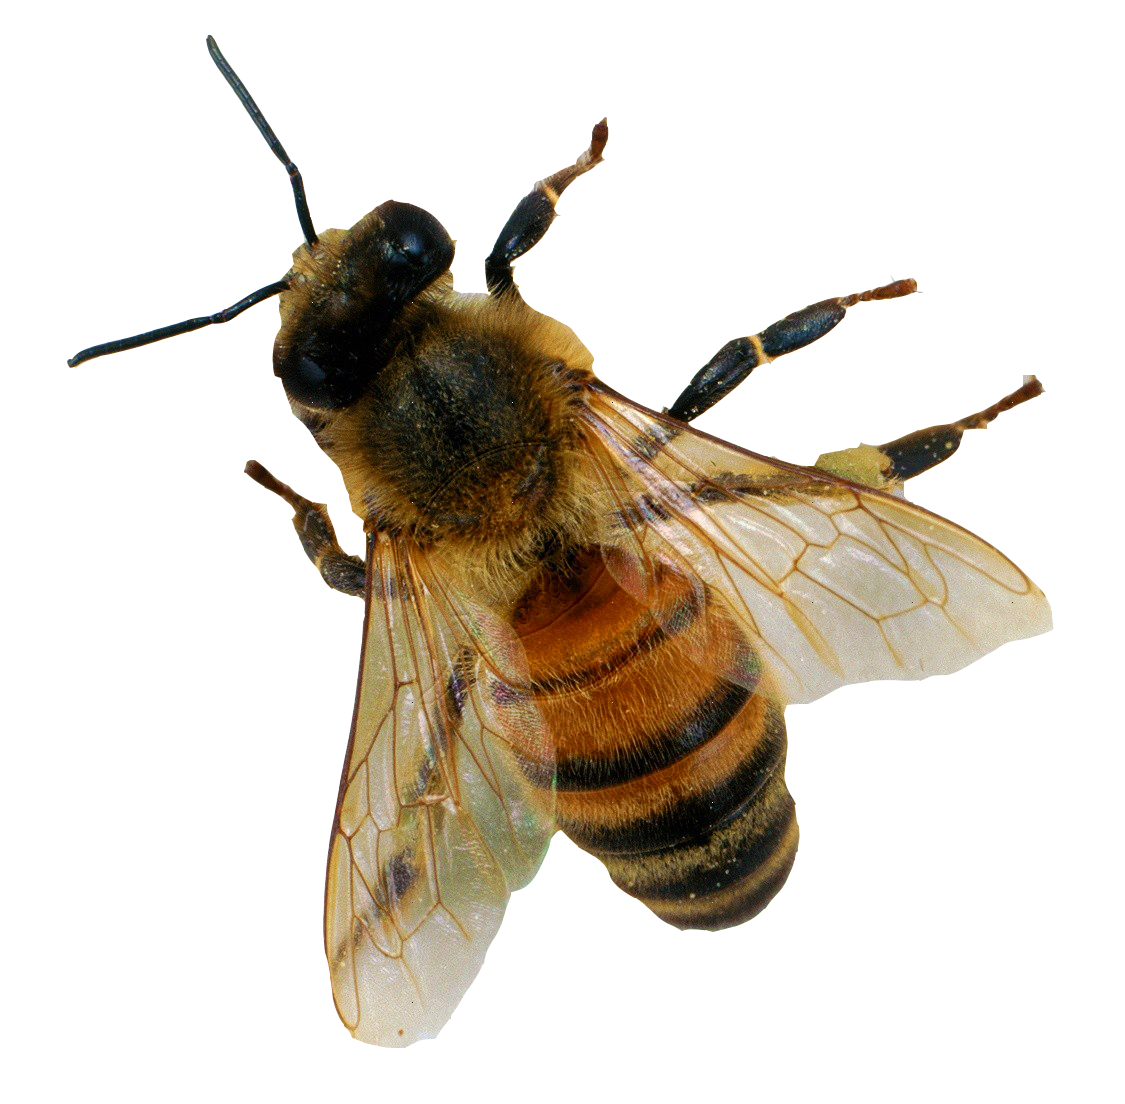 PNG Bee Picture image #45394